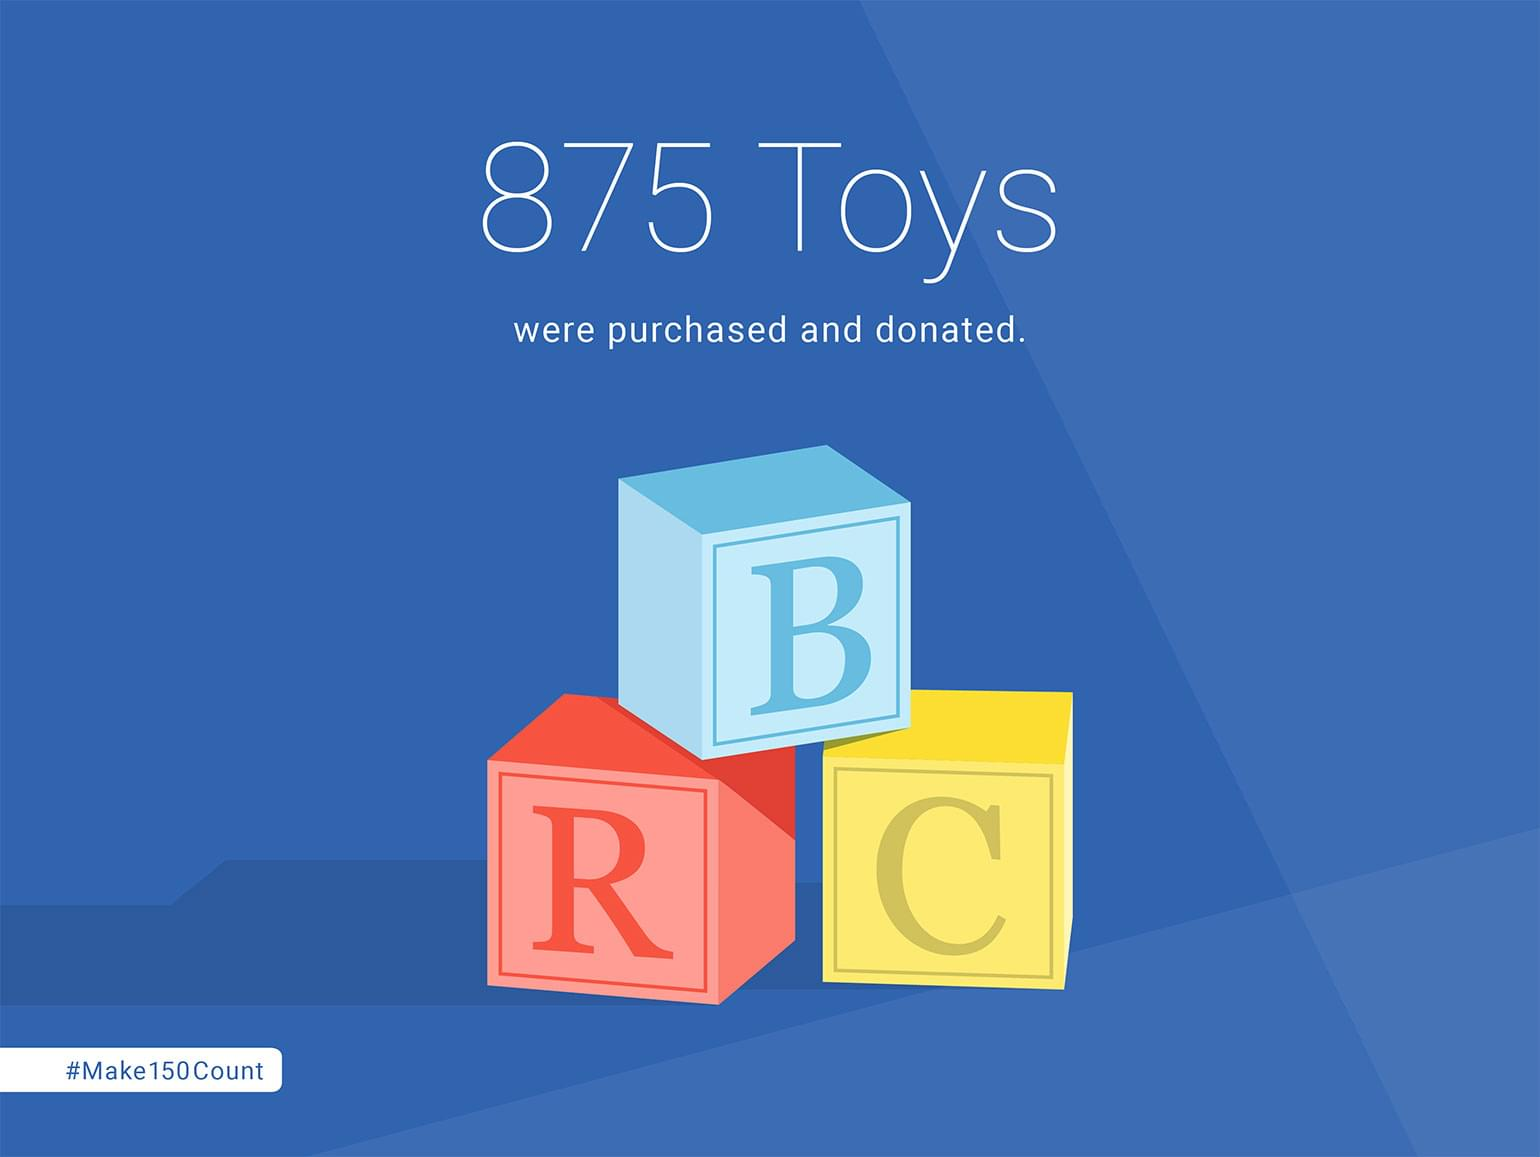 875 Toys were purchased and donated.